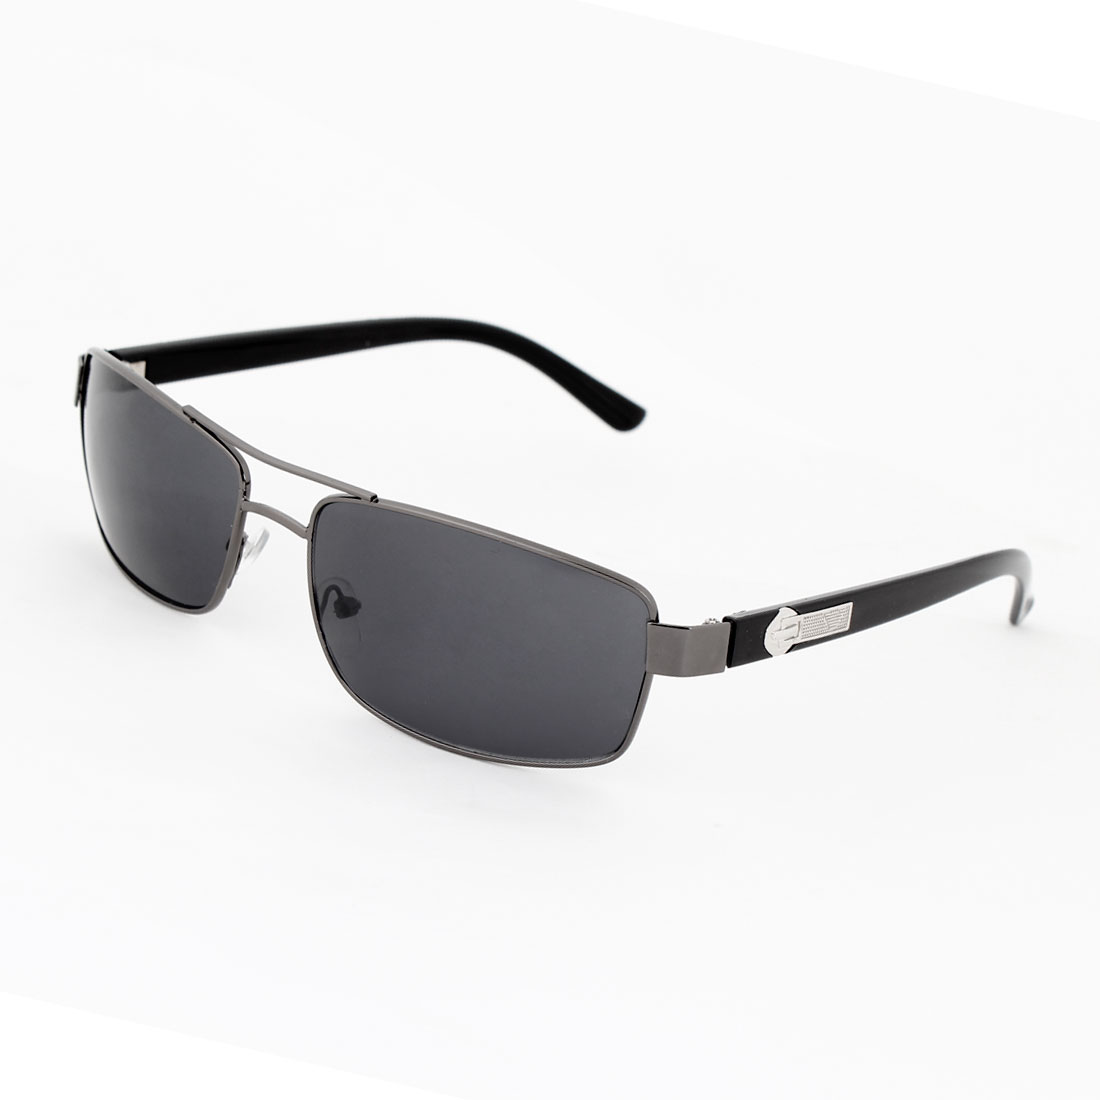 Clear Gray Rectangular Lens Metal Full Rim Sunglasses for Men